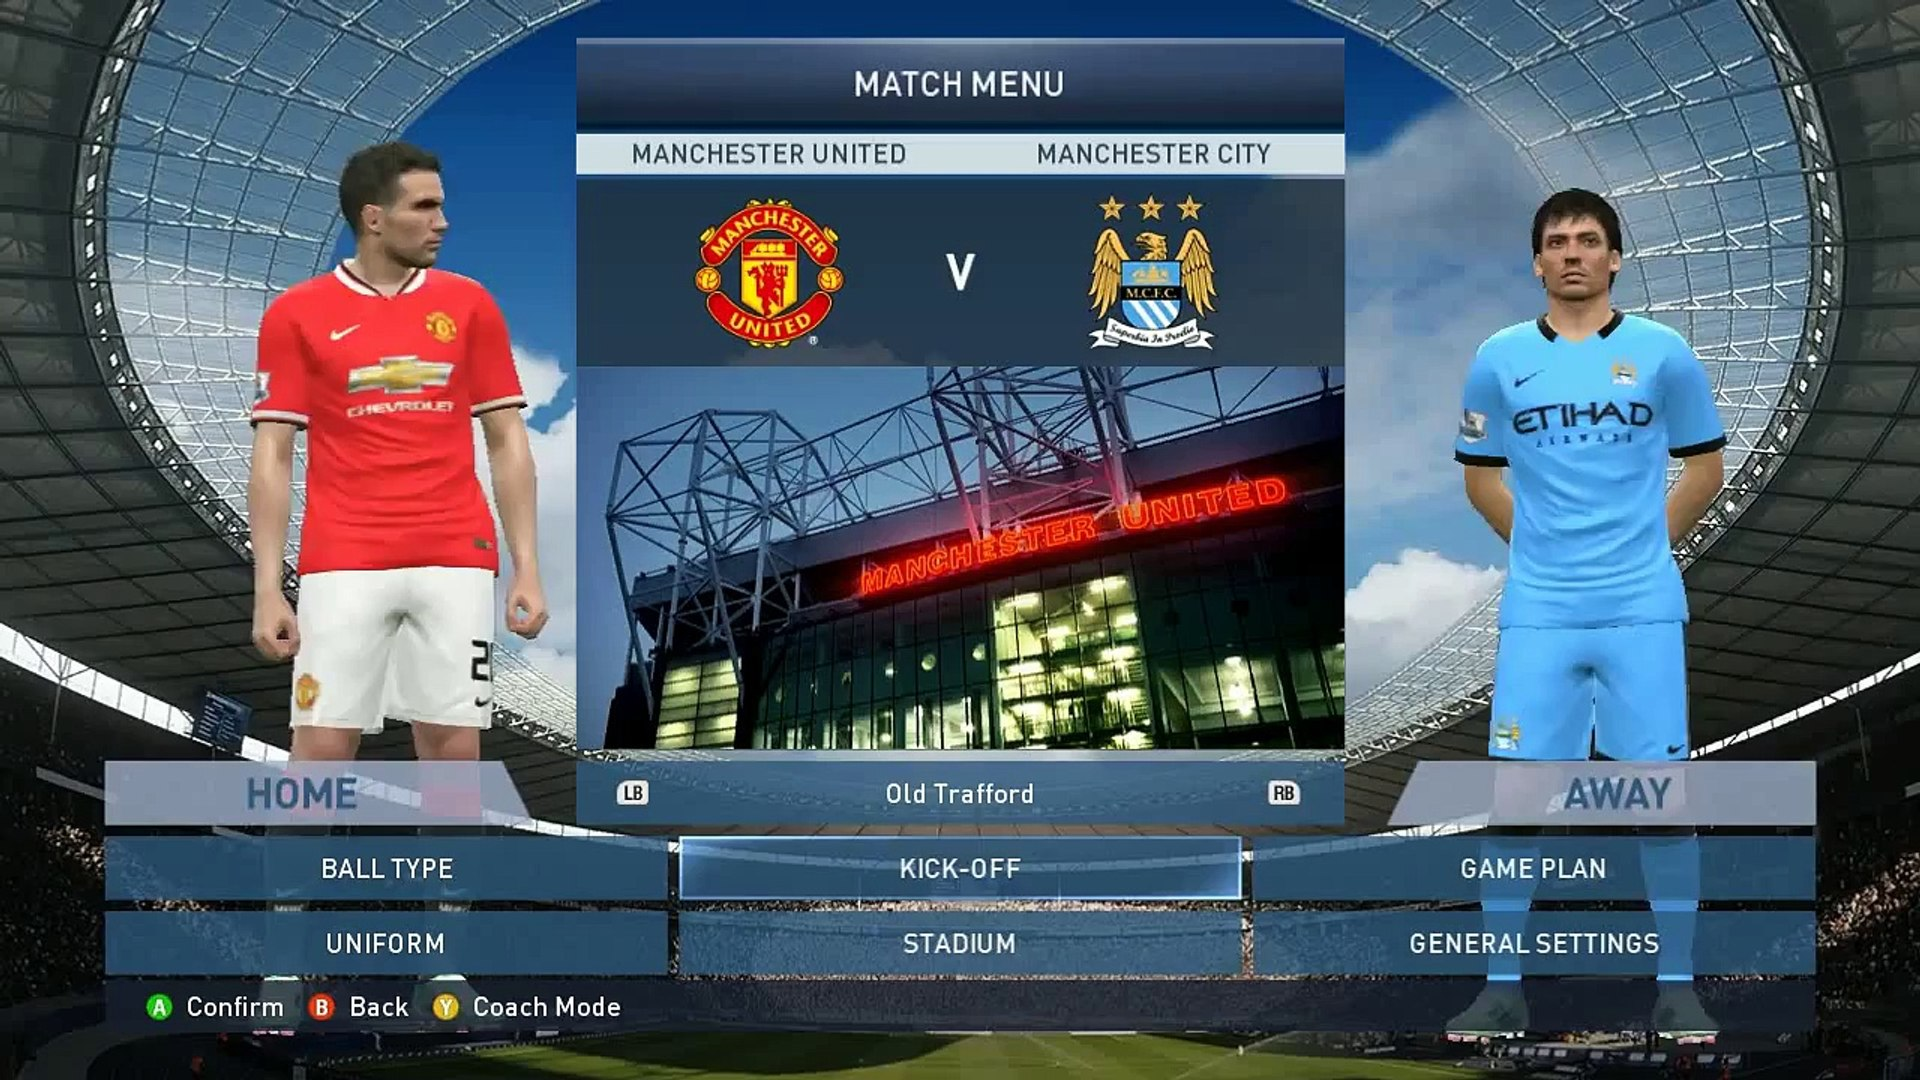 Pro Evolution Soccer 2015 (PES 2015) Premier League Match: Manchester United VS Manchester City